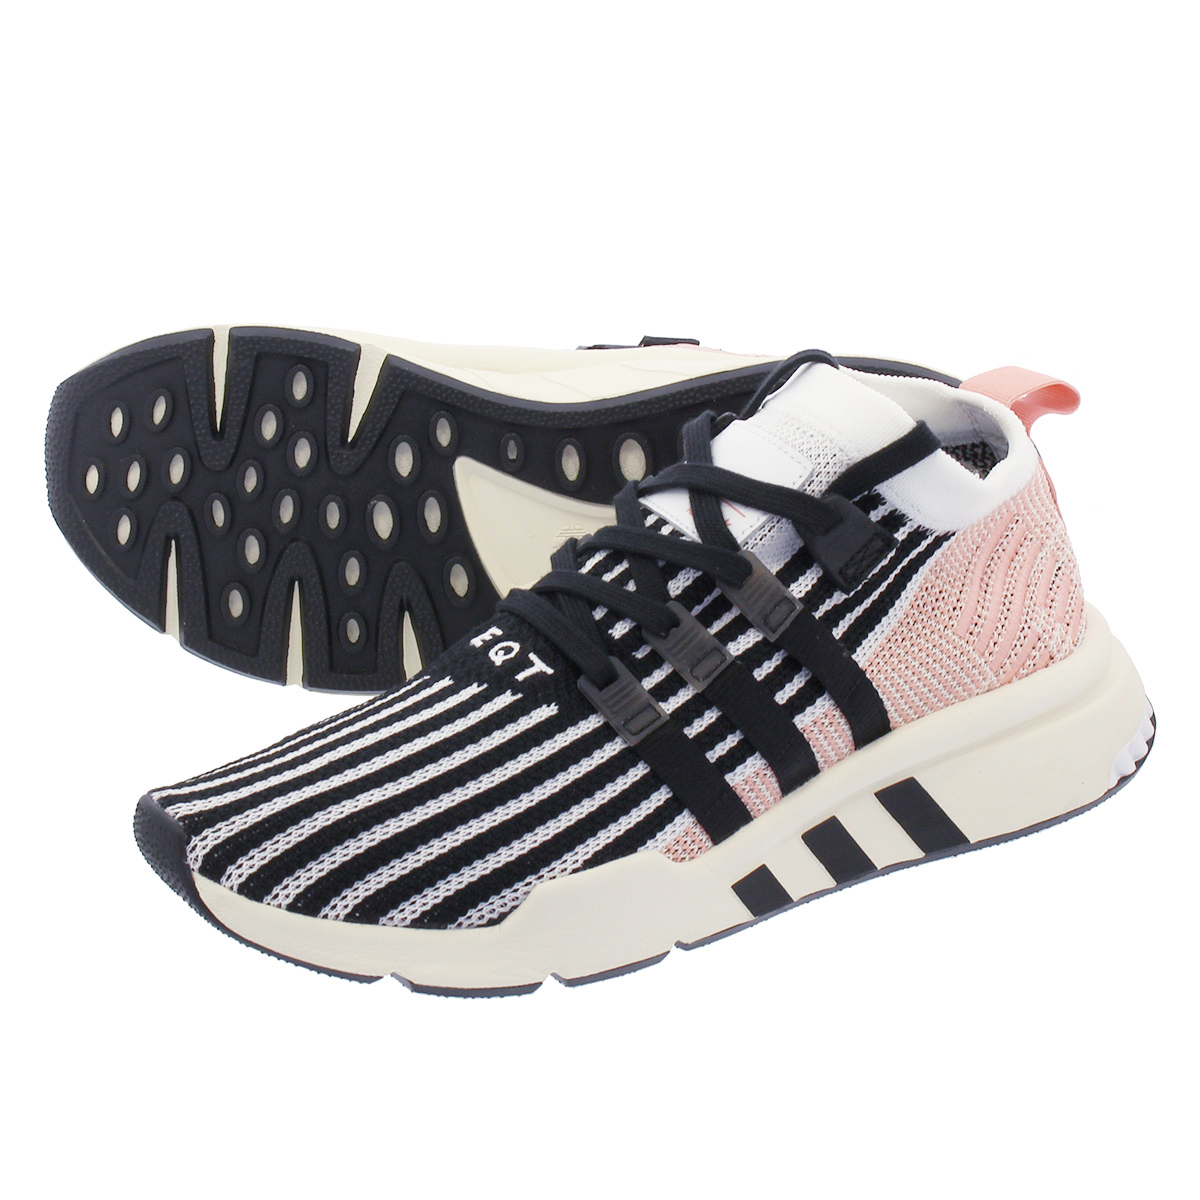 buy online 3d1a5 bce72 adidas EQT SUPPORT MID ADV PK Adidas EQT support mid ADV PK RUNNING  WHITE/CORE BLACK/TRACE PINK aq104